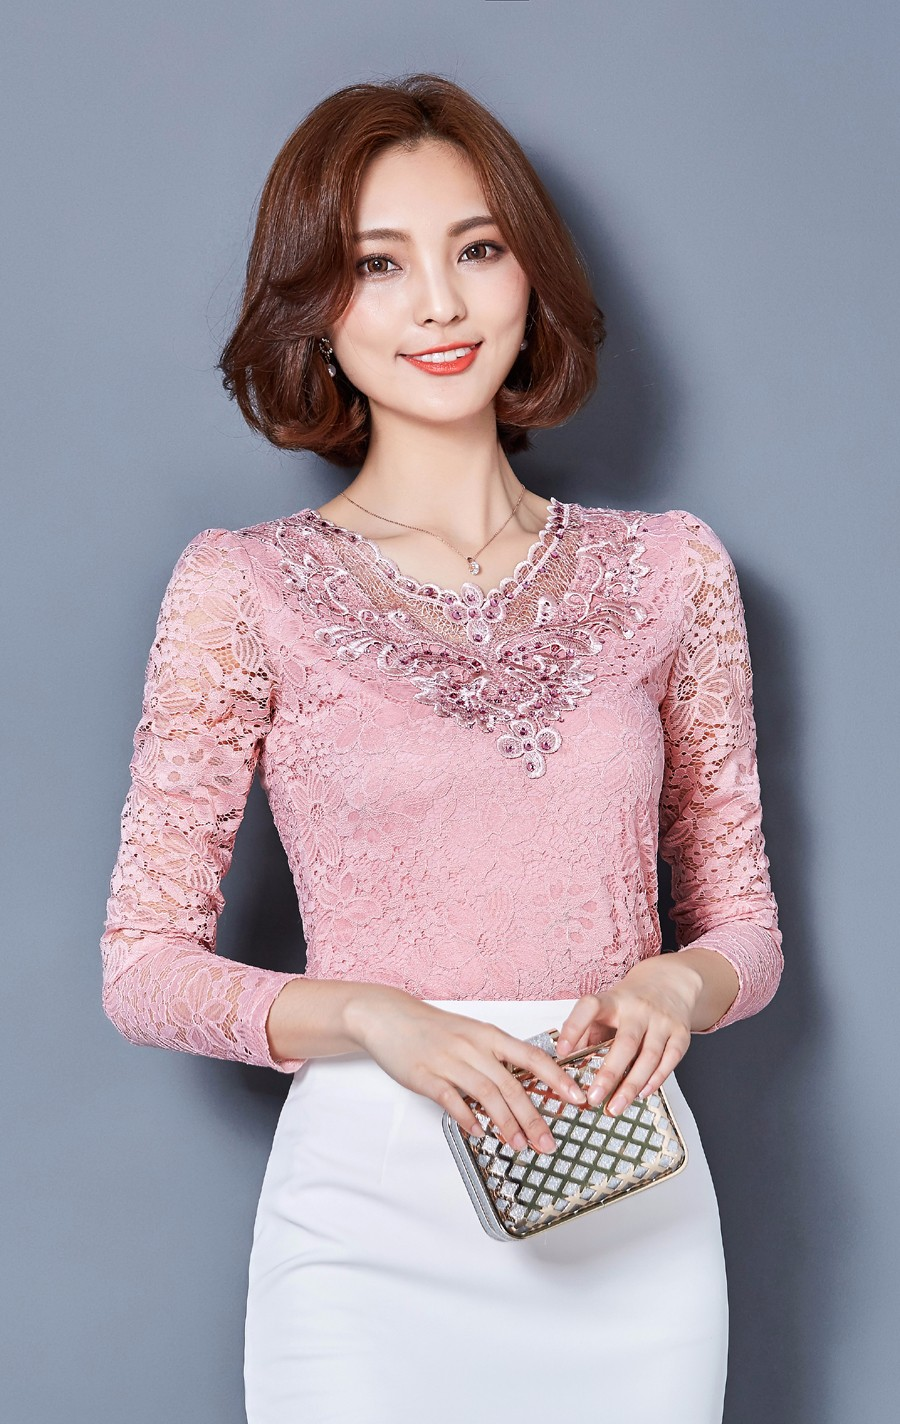 42a5c3bce79 FGLAC 2018 spring Women blouse Solid color long sleeved Diamonds ...